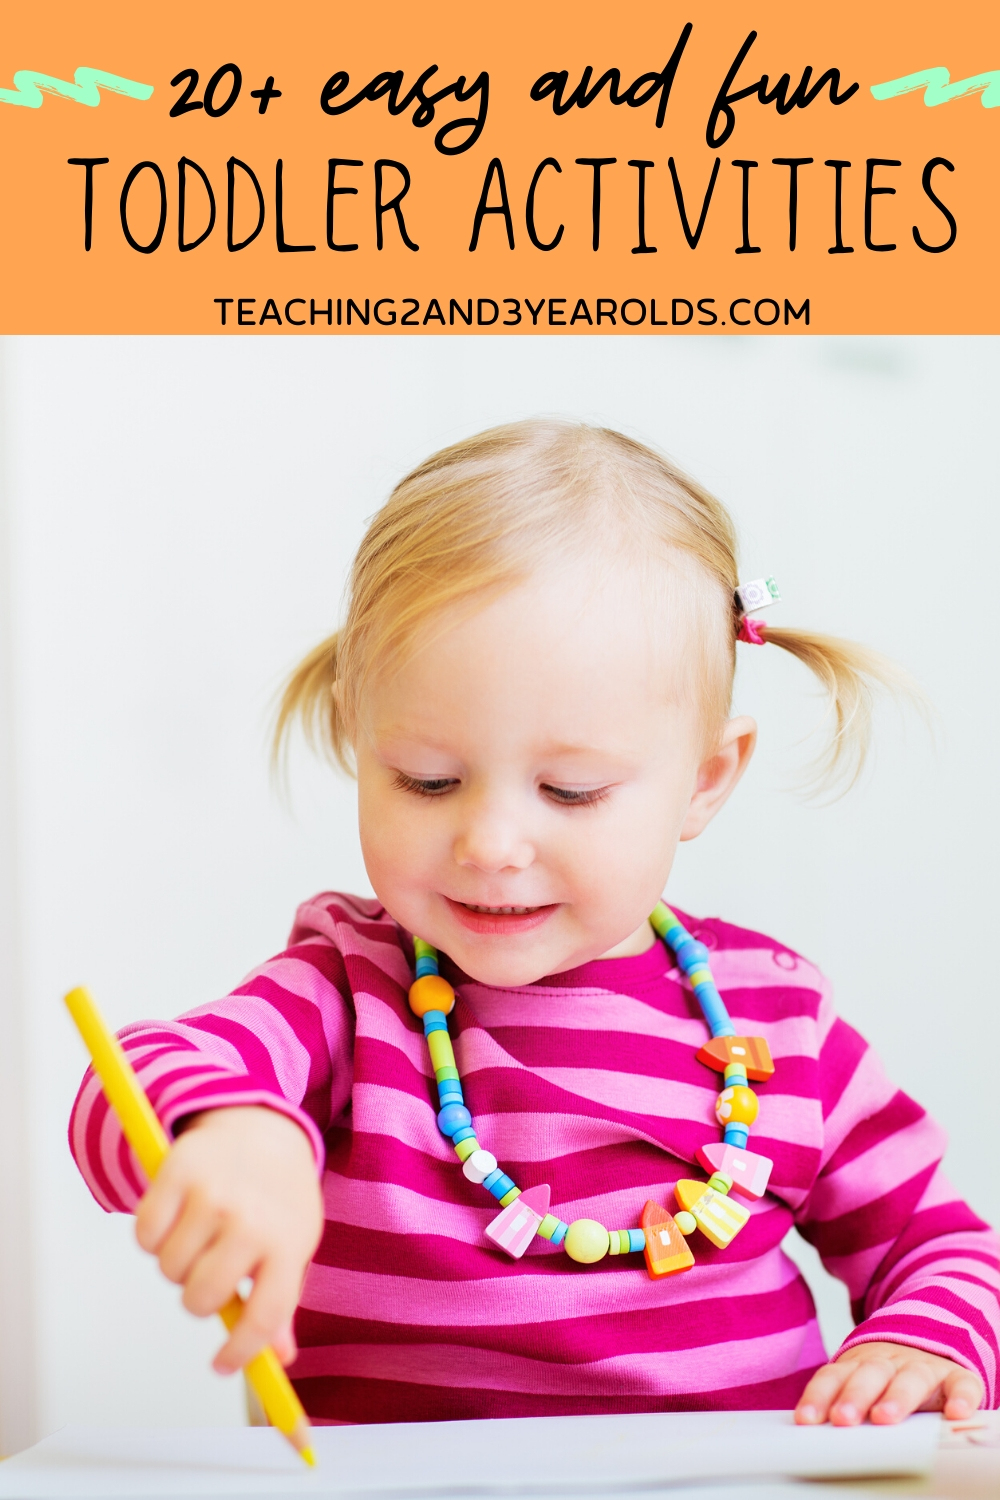 20+ Fun and Easy Toddler Activities for Home